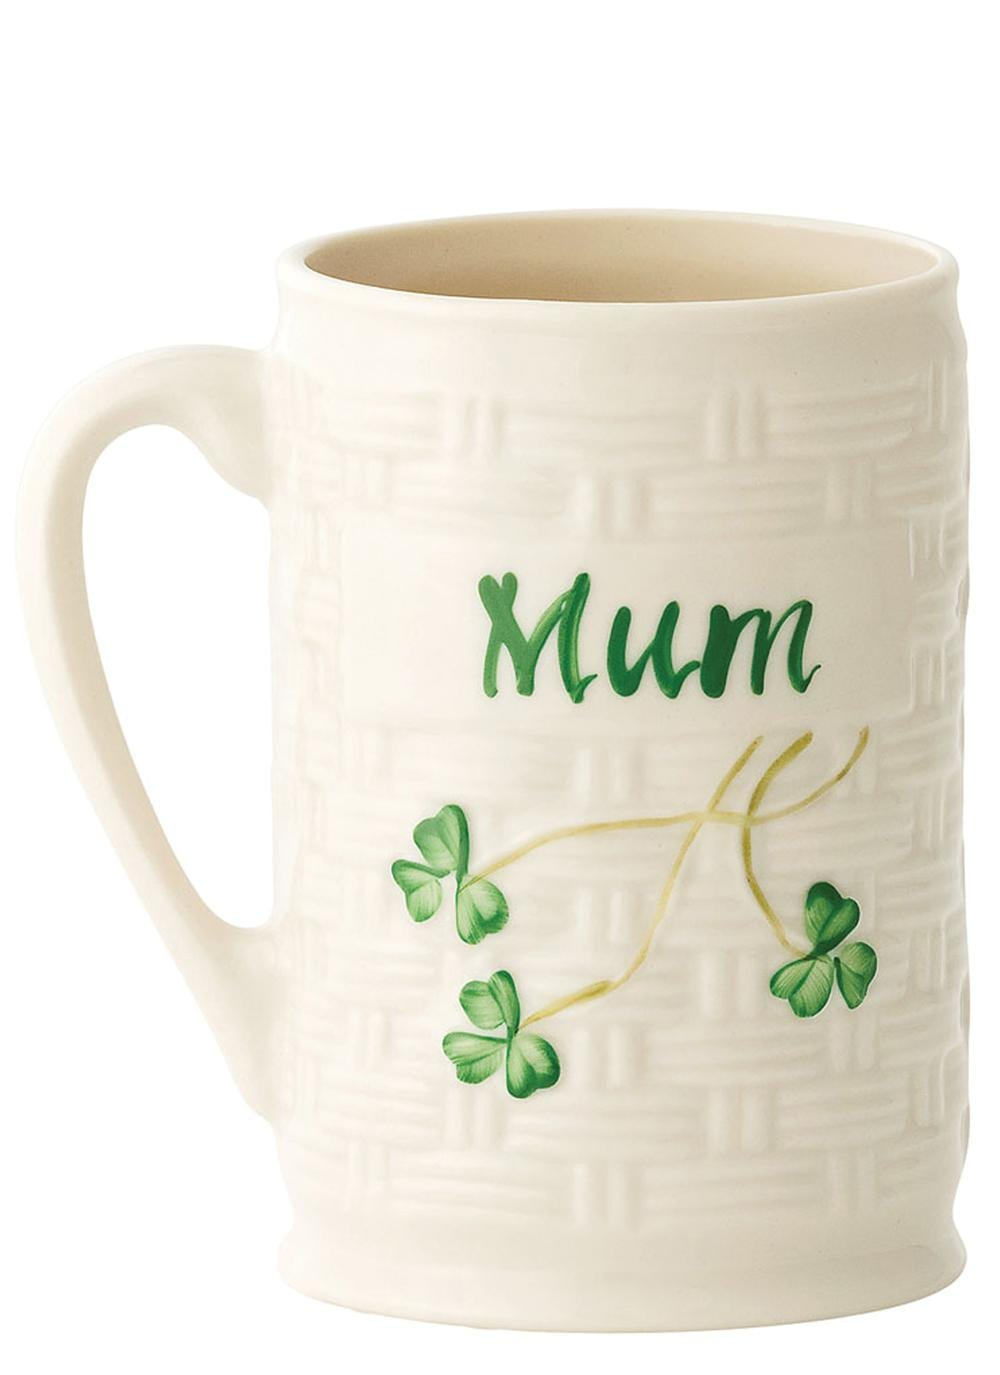 Belleek Mum Mug, US$29